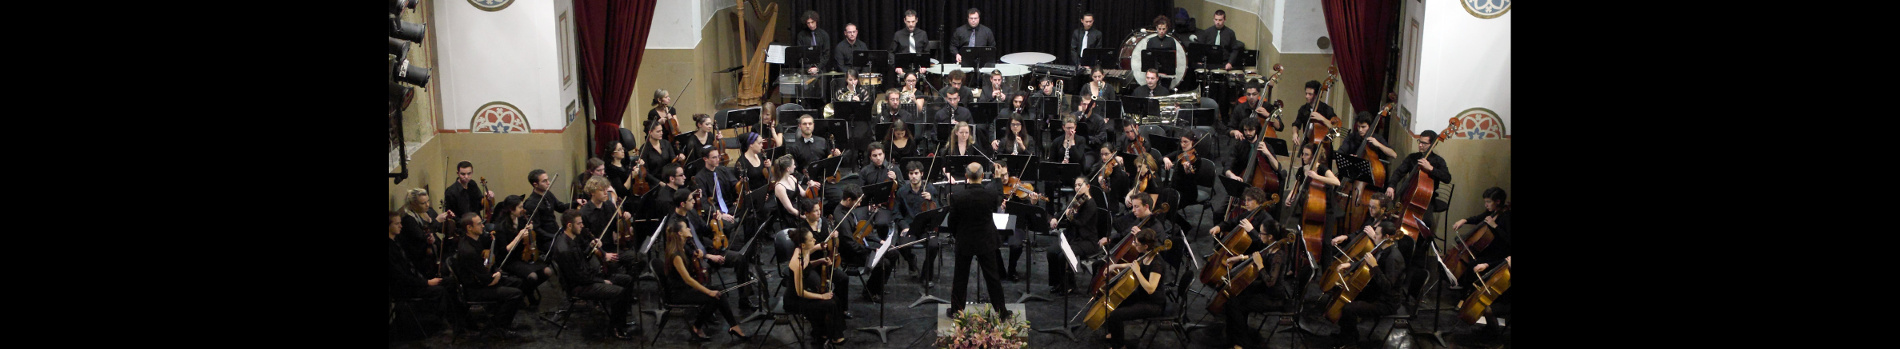 From Classics to Neo-Classics - Opening of the Season, The Mendi Rodan Symphony Orchestra